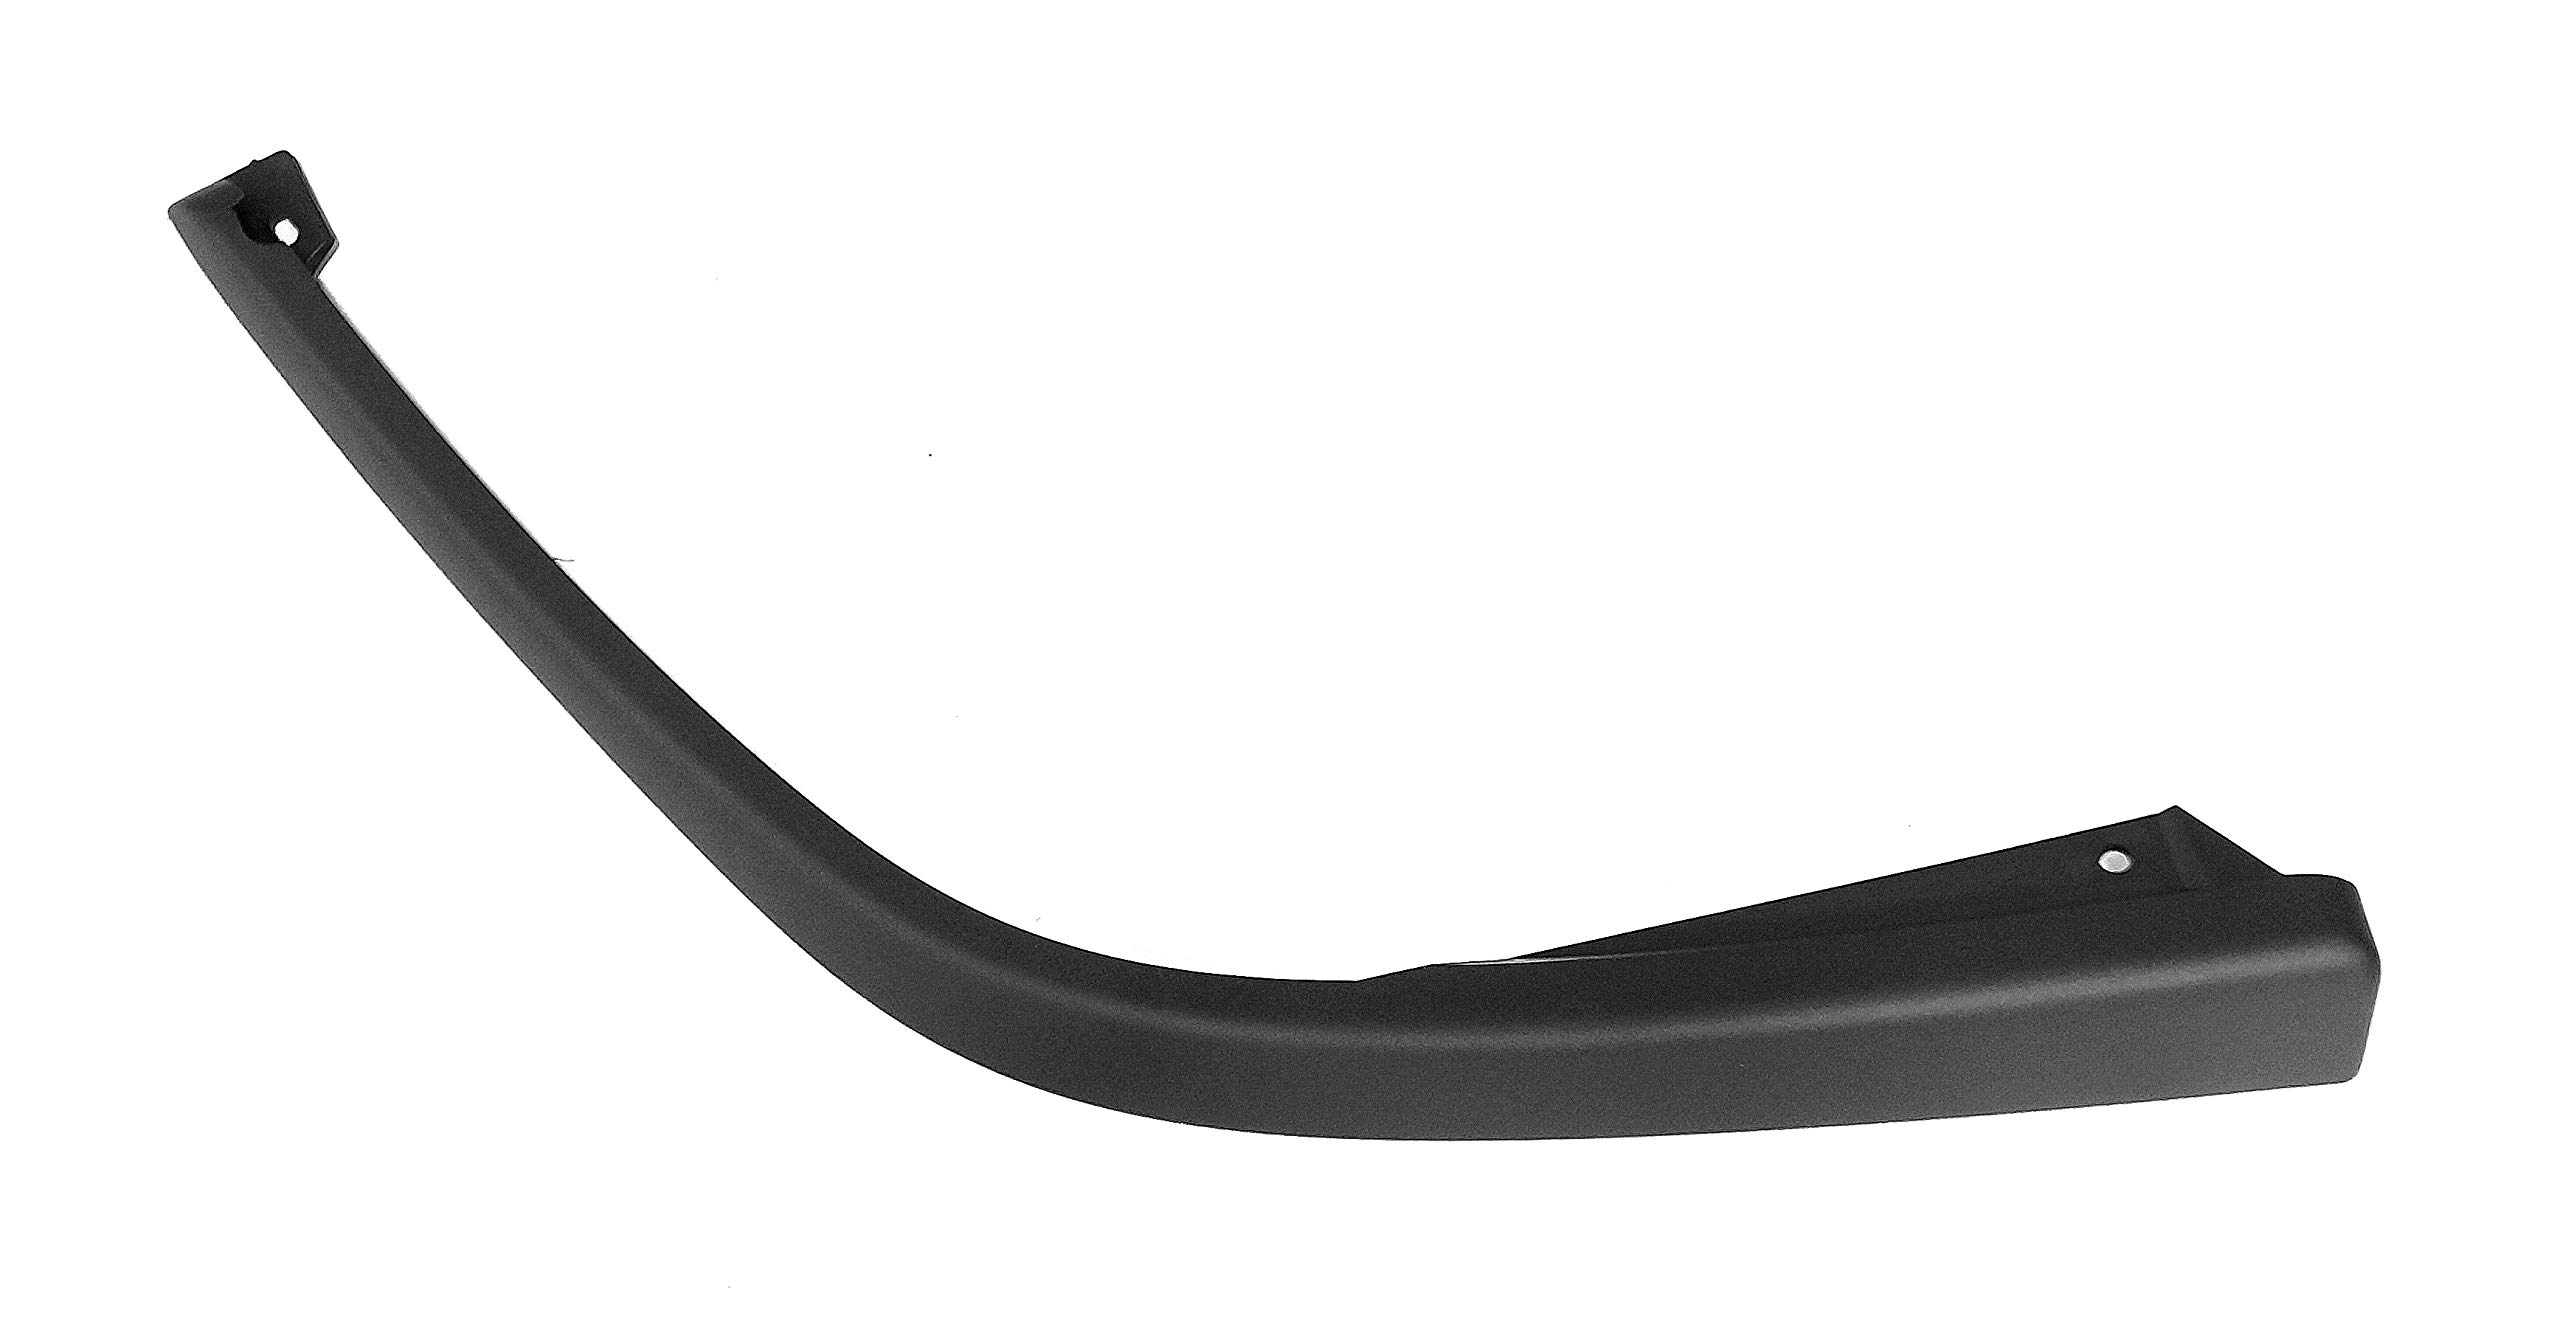 Saab Original 9-5 Right Side Front Spoiler - Black 4561007